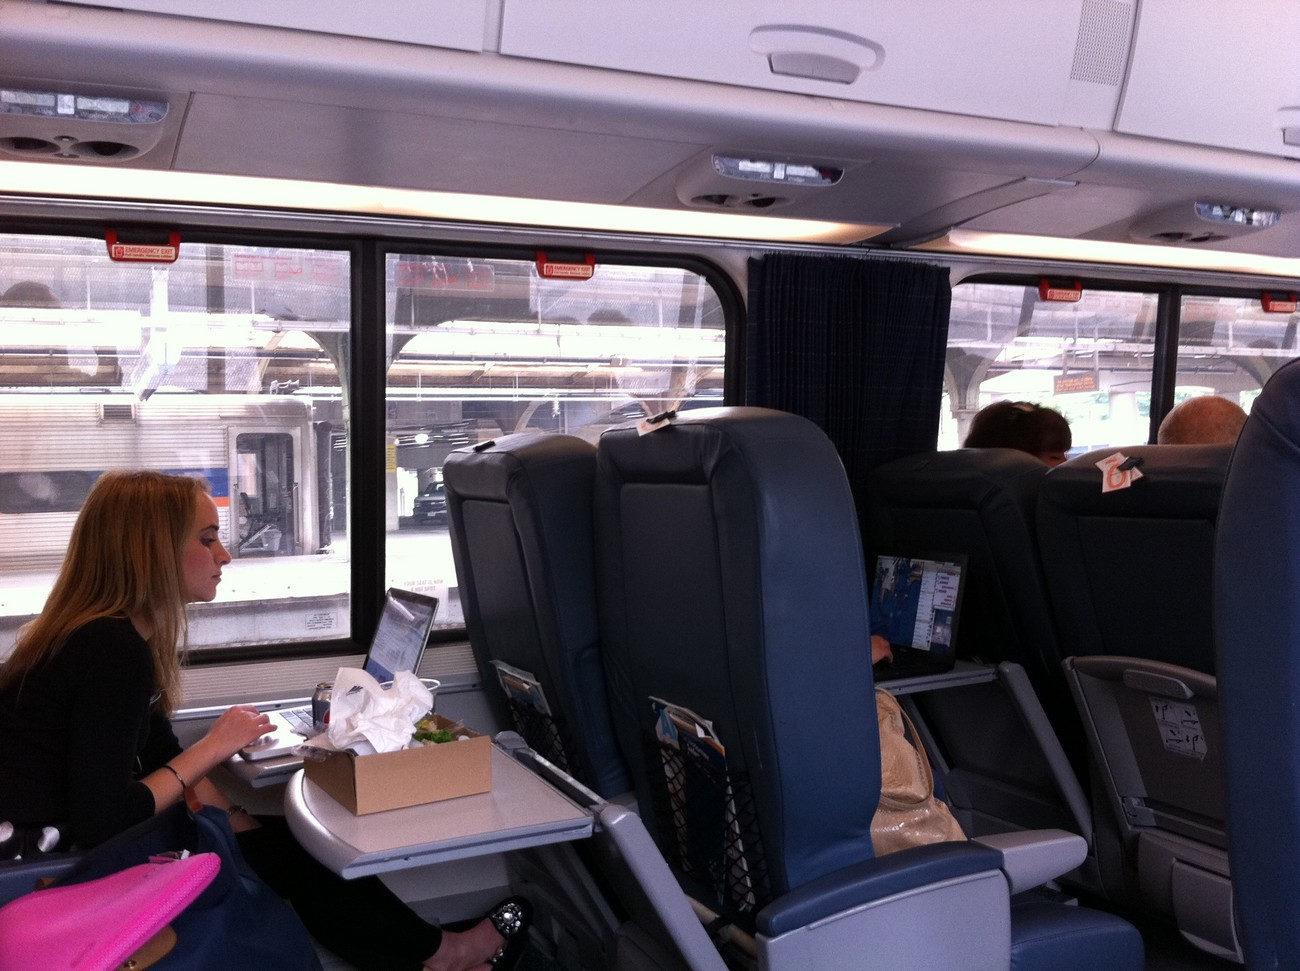 How to get cheap Amtrak train tickets from St. Louis to Denver? Amtrak offer a total of 4 train schedules to Denver. Compare all available fares that vary according to comfort, ticket promotions, and availability.